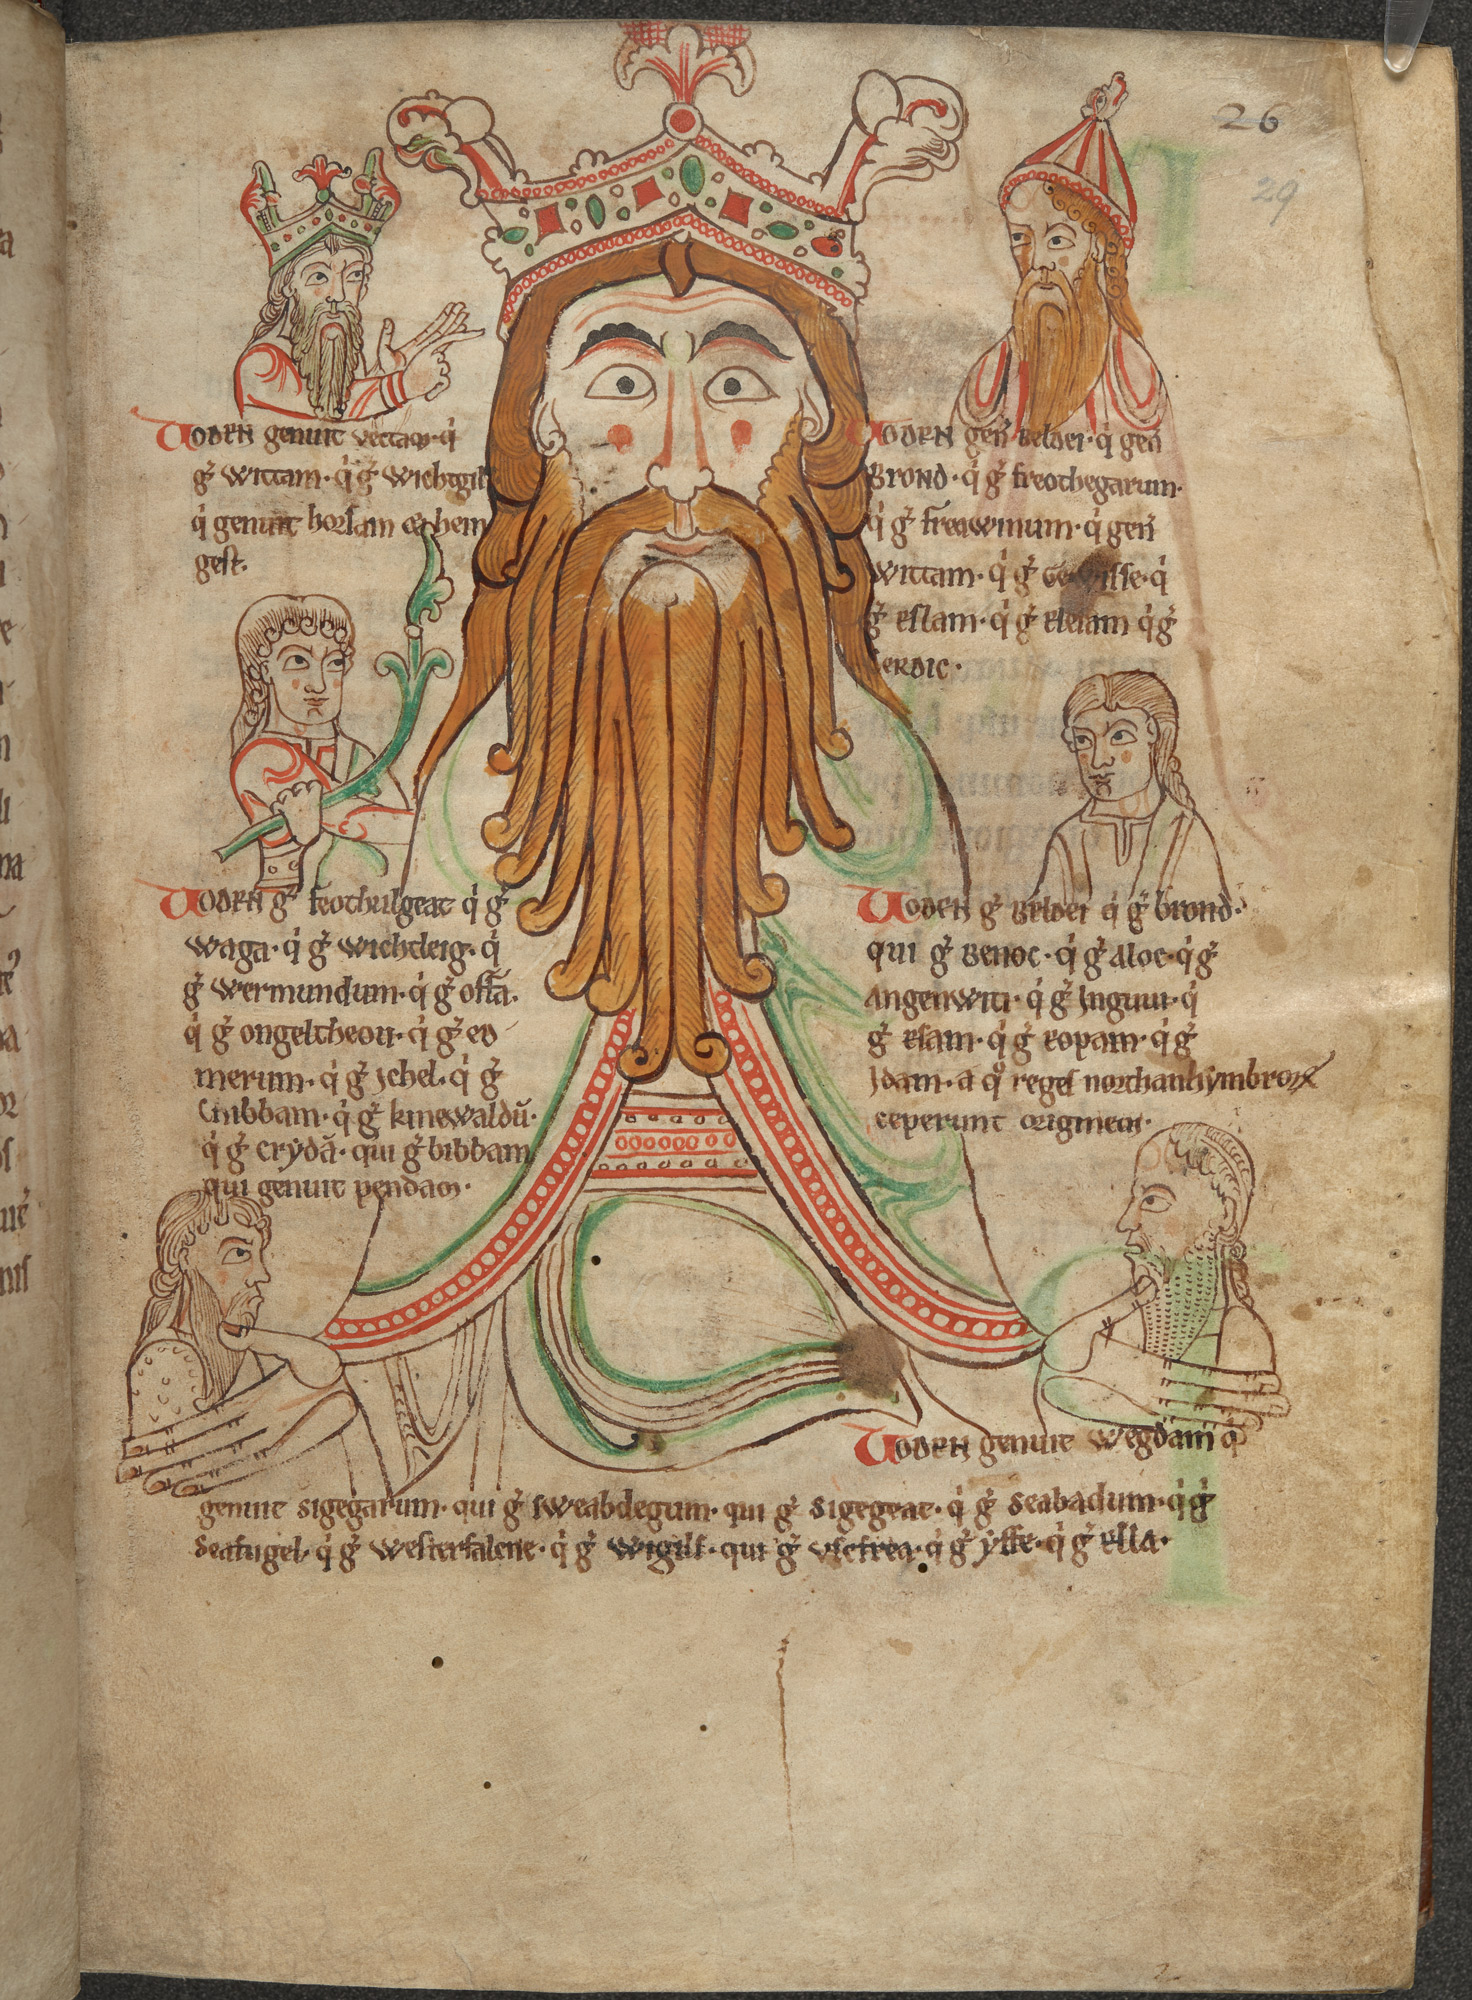 A manuscript page featuring a king with a long beard